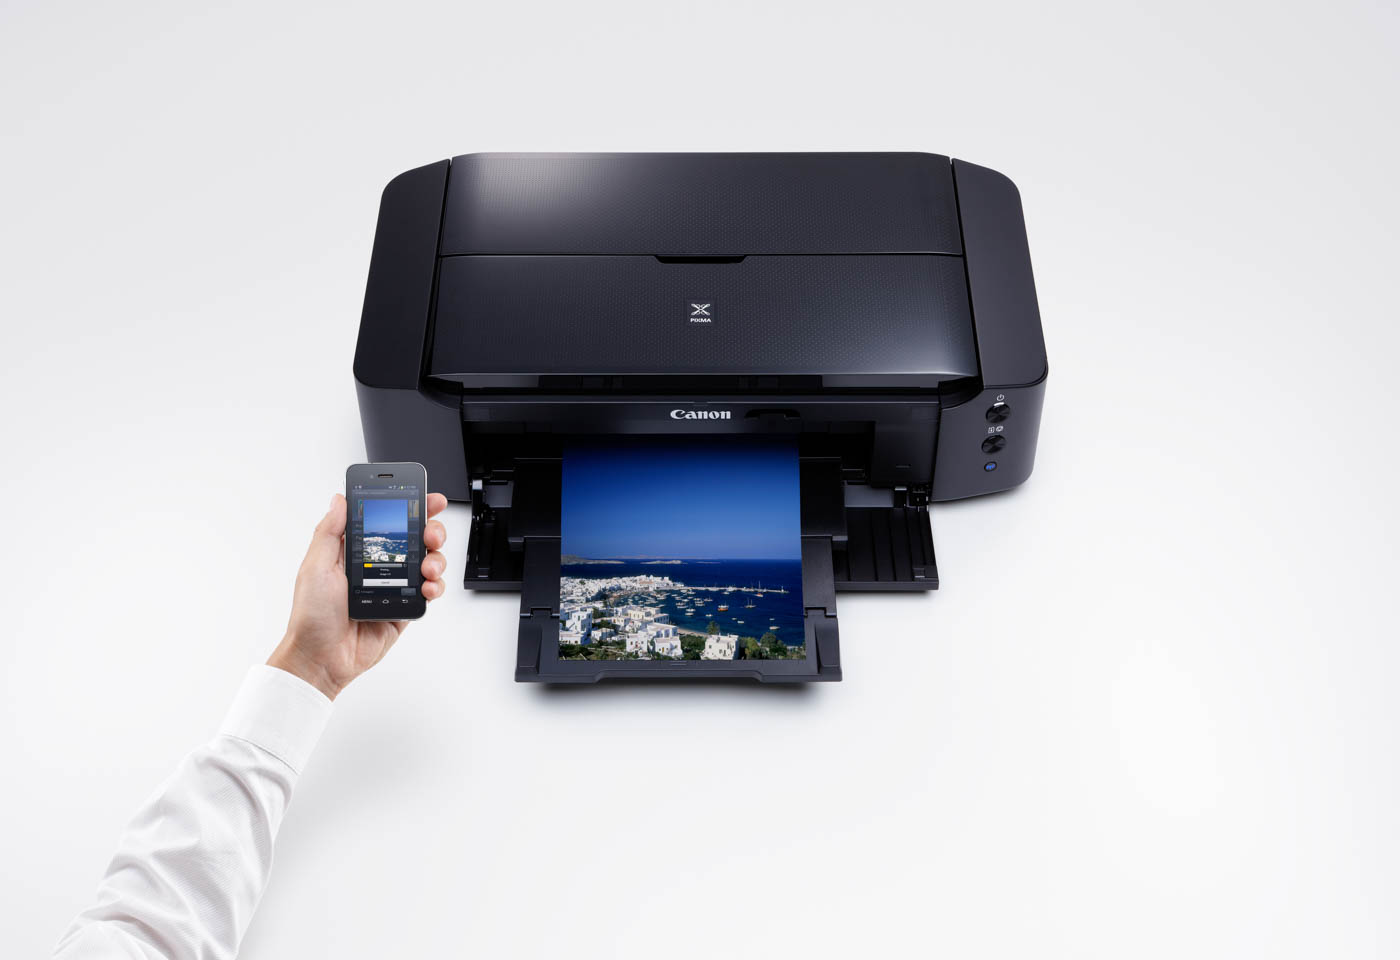 Connect Your Pixma To Computer Wirelessly In Three Steps Canon E510 Multifunction Inkjet Printer Easy